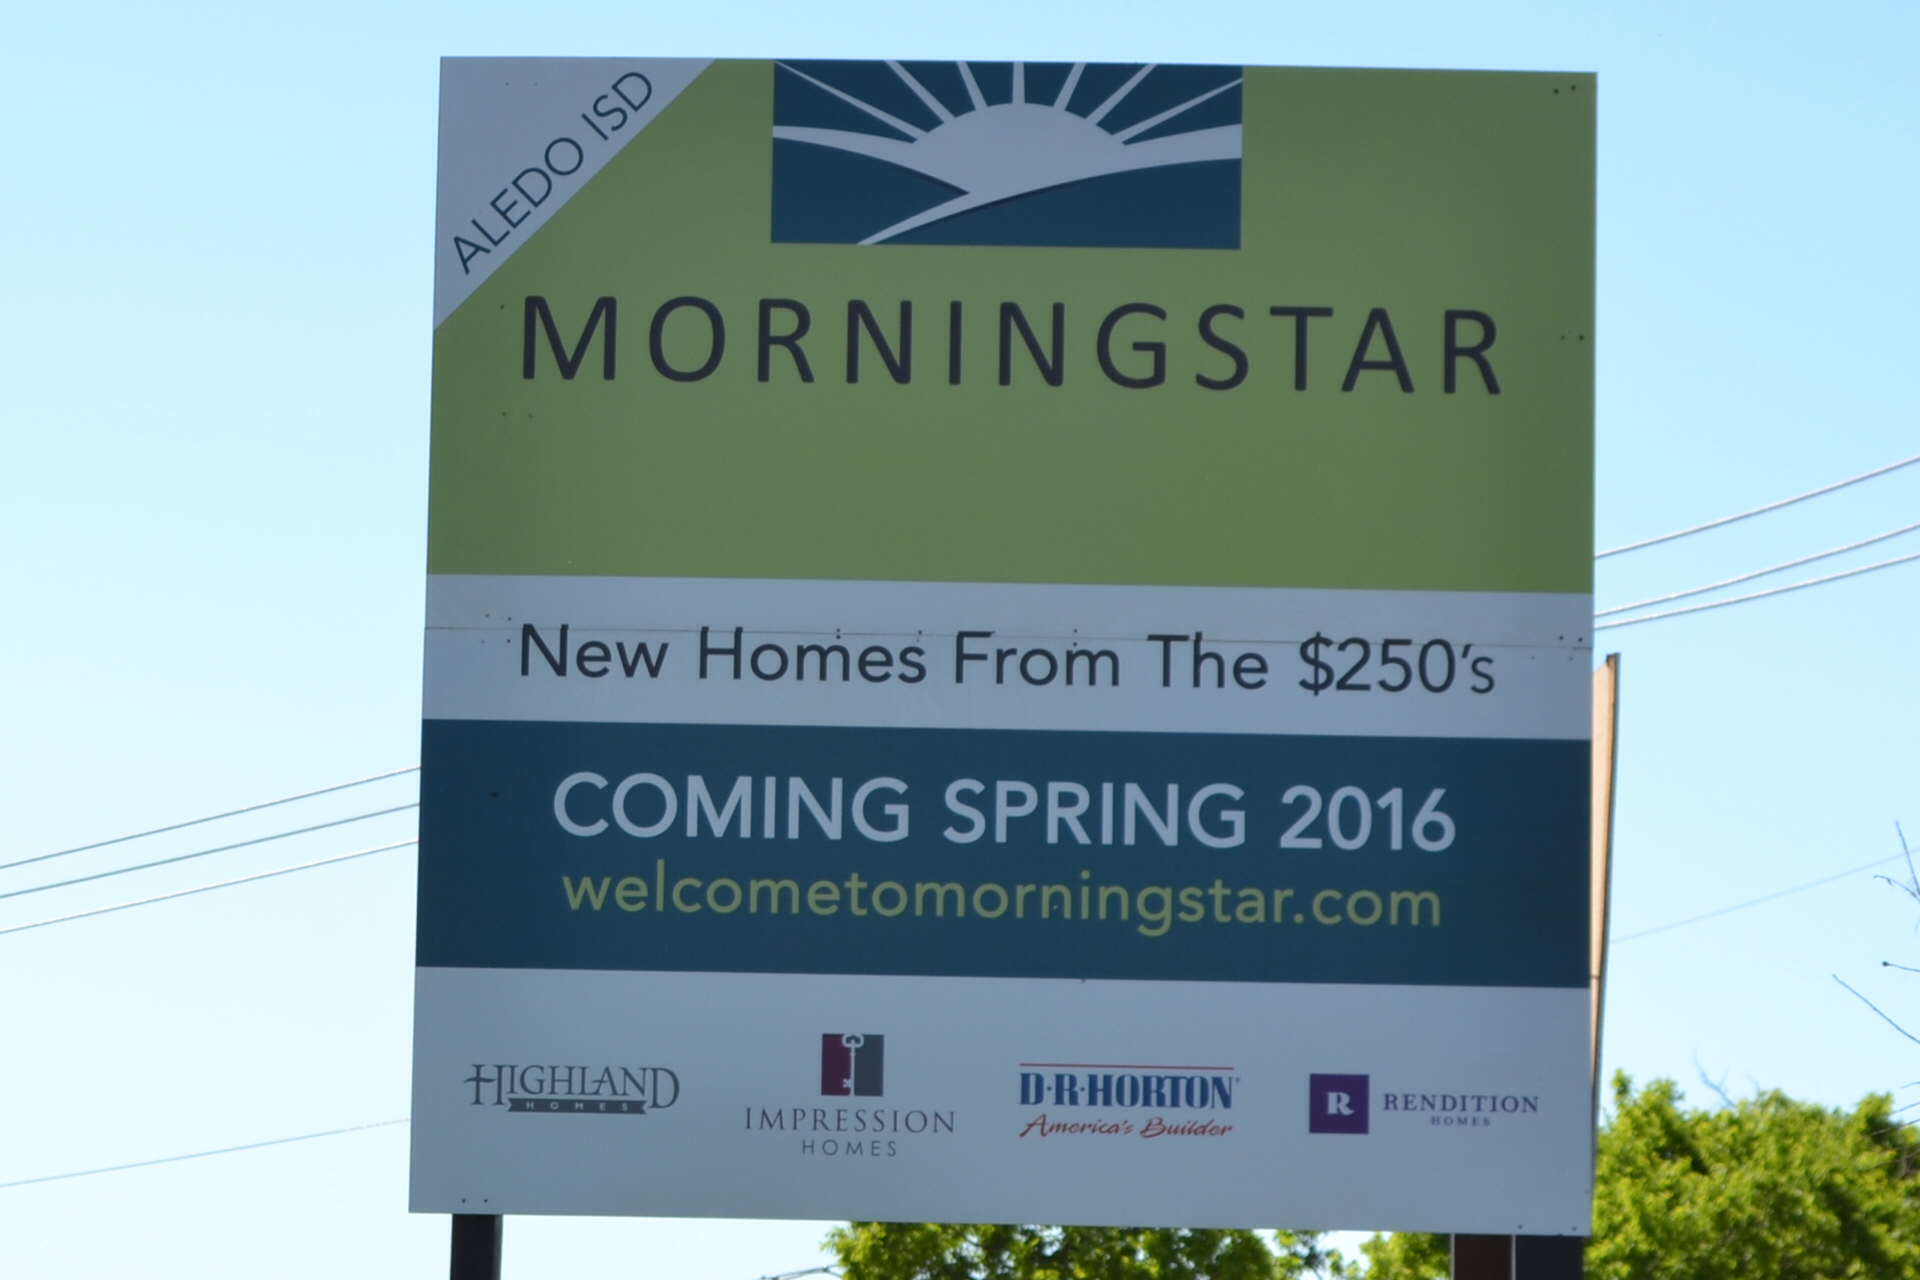 Morningstar sign